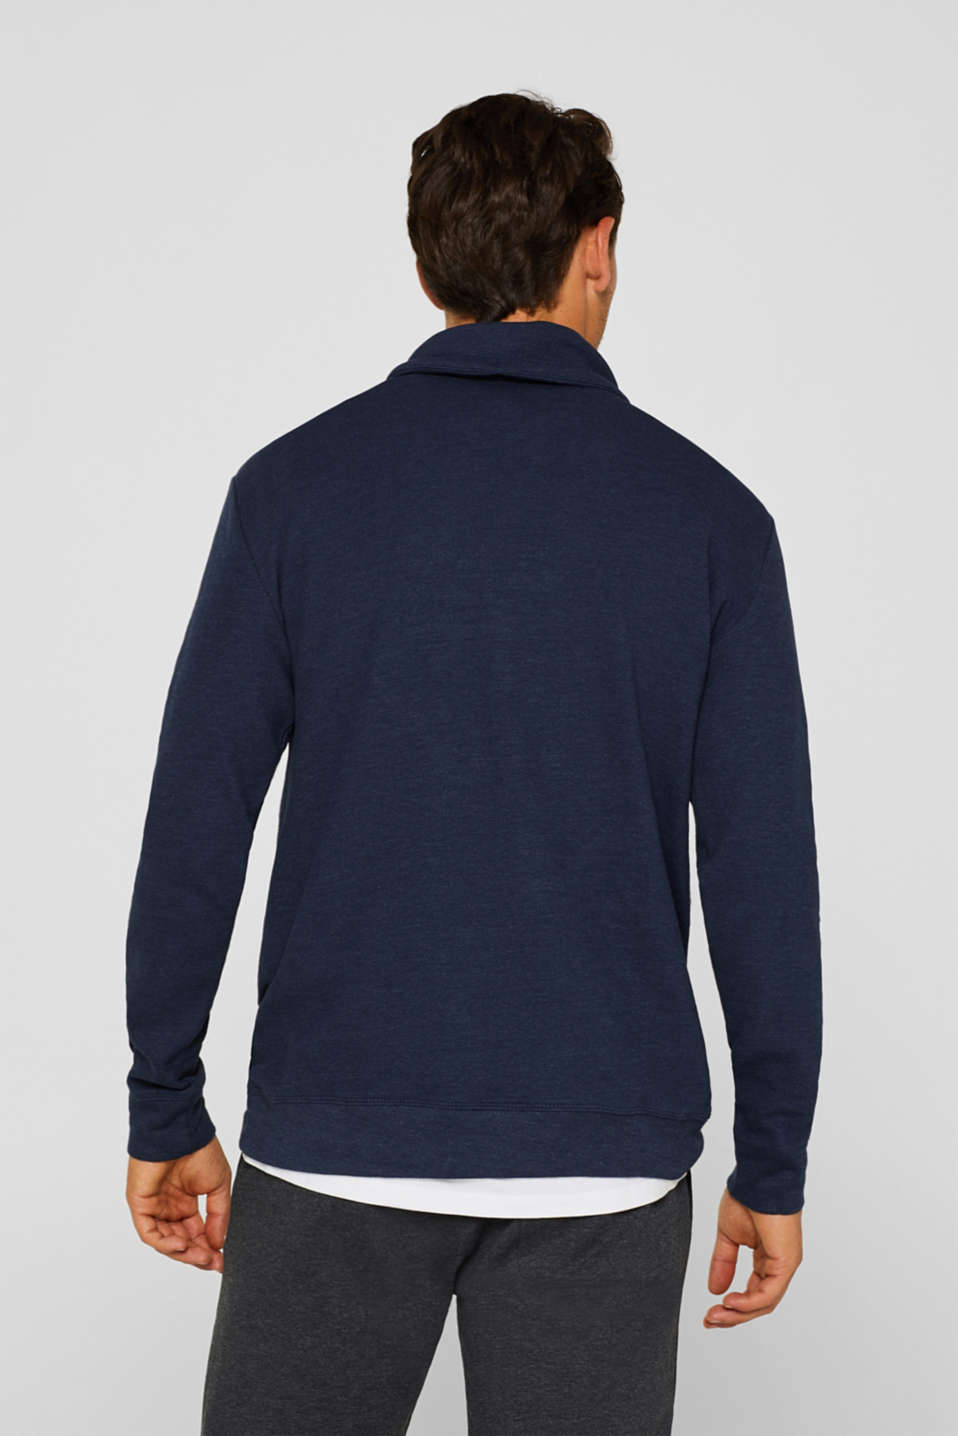 Piqué long sleeve top with a drawstring collar, NAVY, detail image number 3